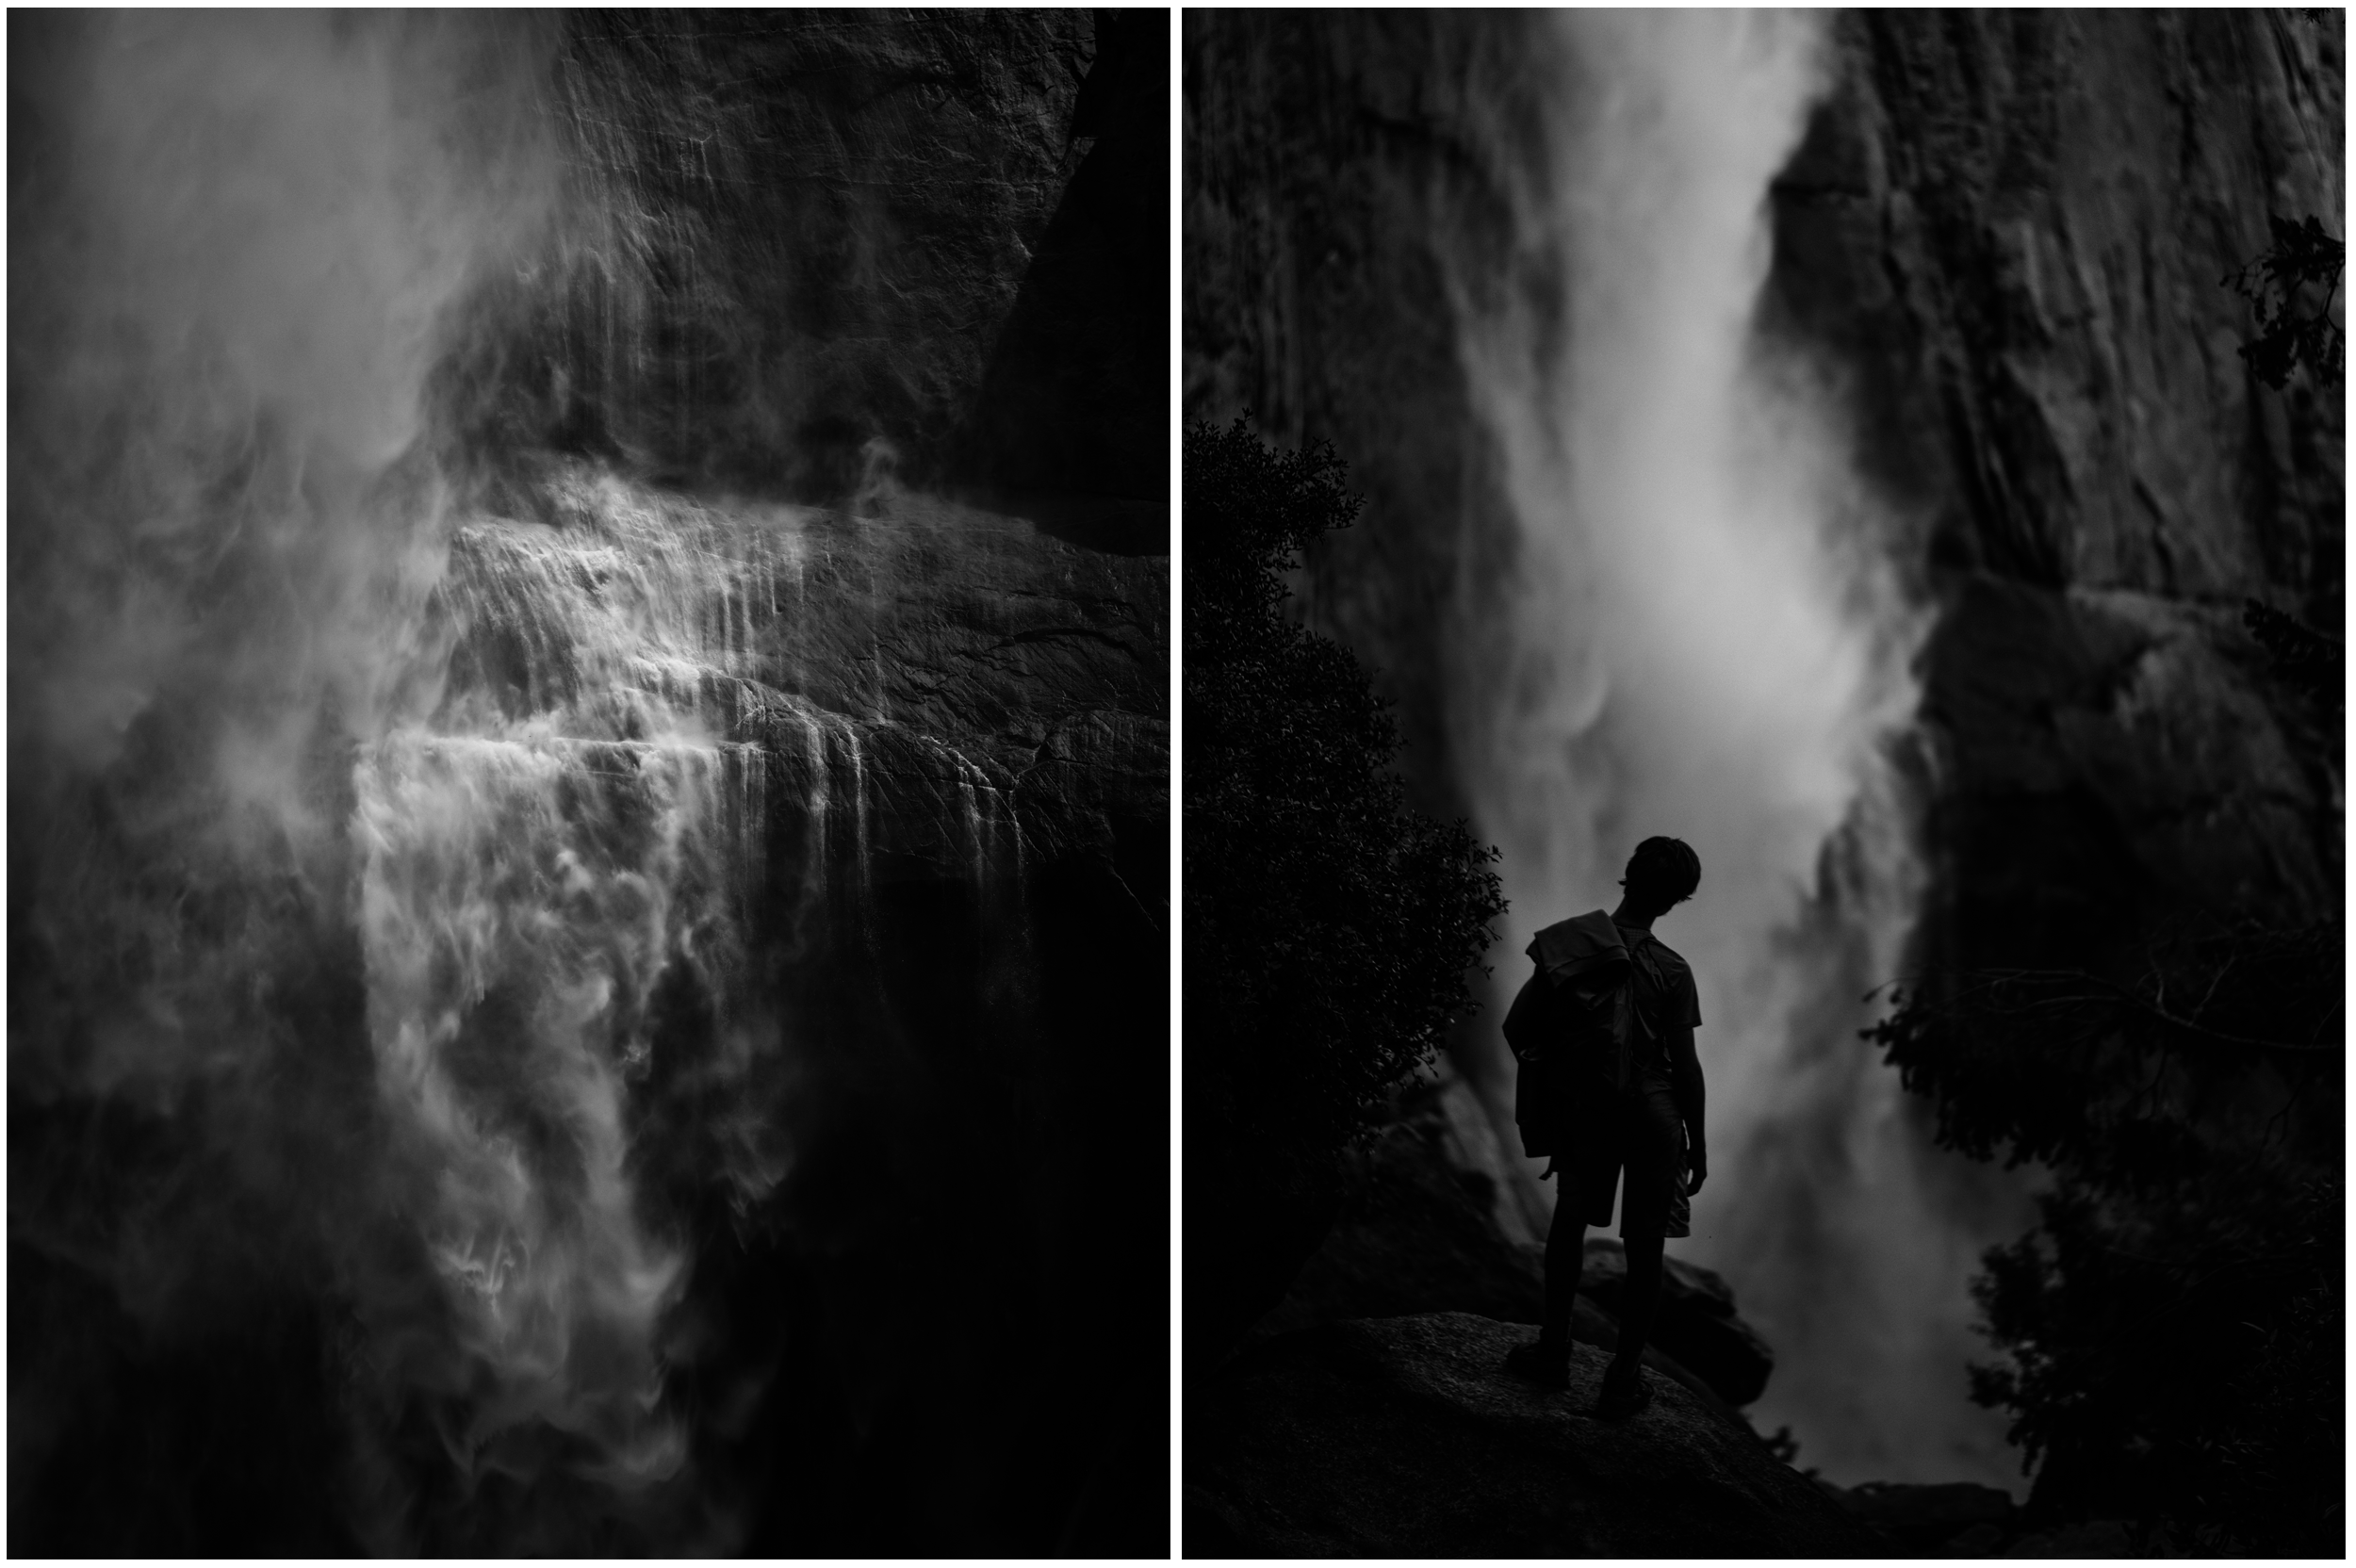 07-Yosemite-Falls-photo-by-Trey-Hill.png